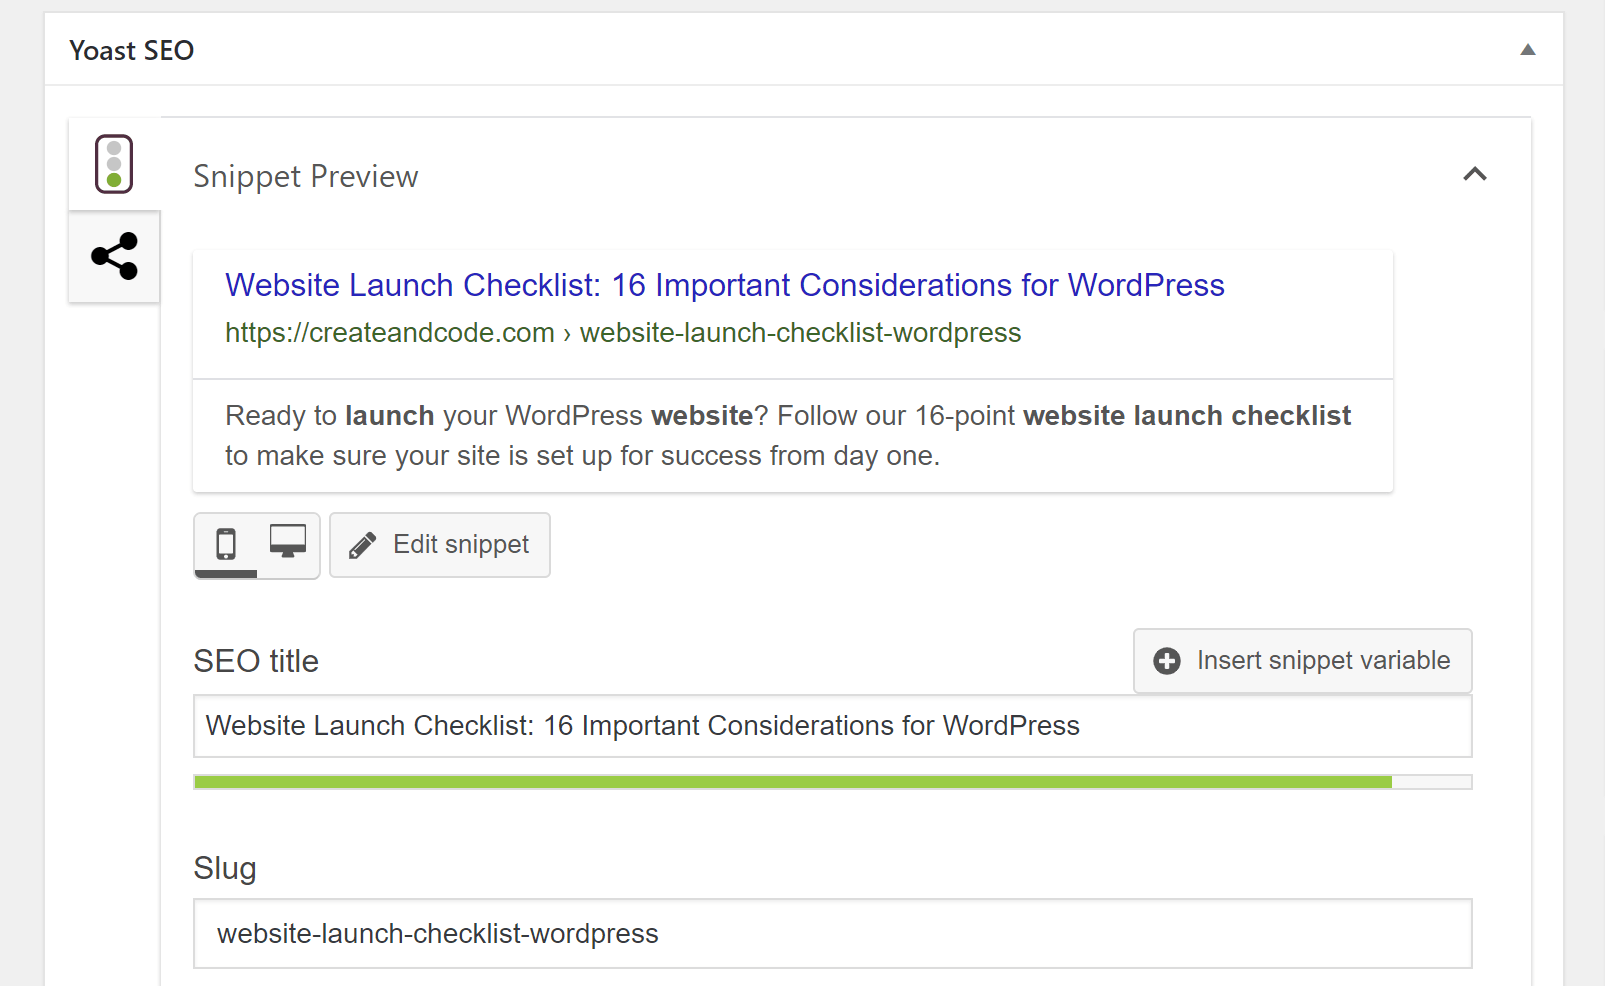 Website launch checklist SEO